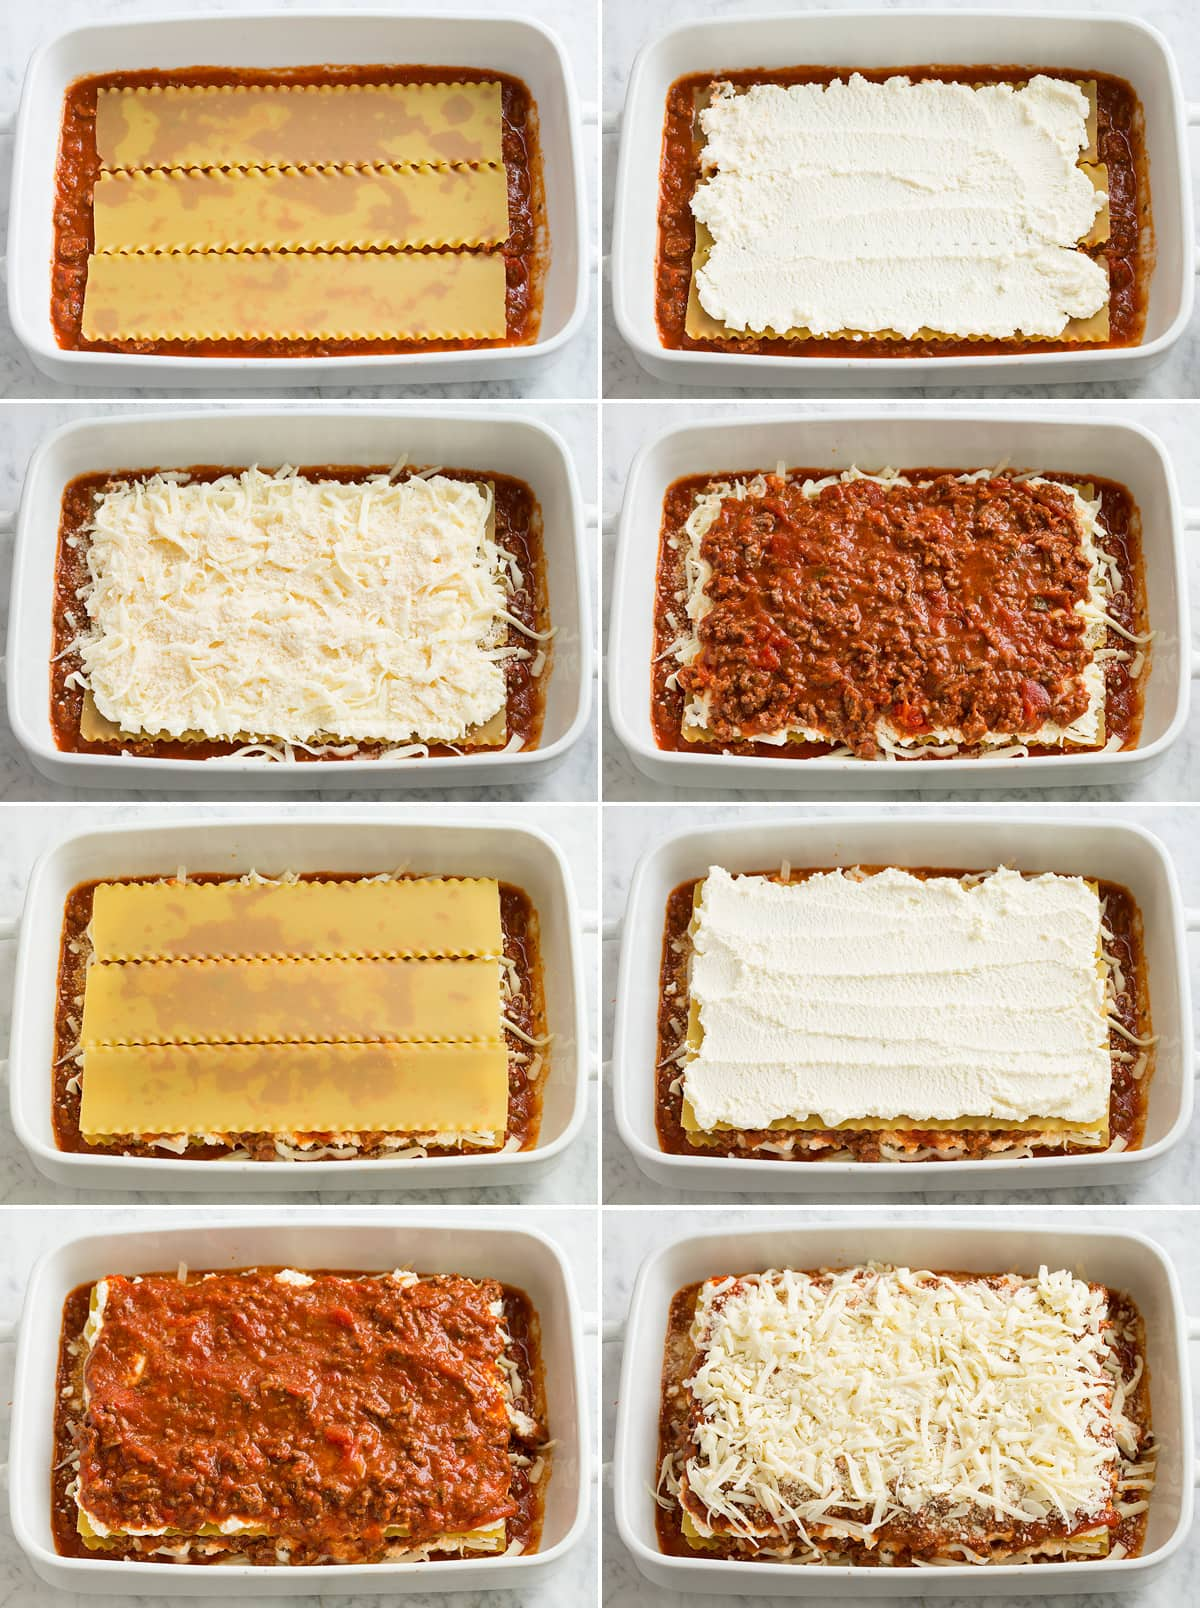 Image showing eight steps of layering easy lasagna. Includes layering lasagna noodles, cheeses, sauce and repeating.